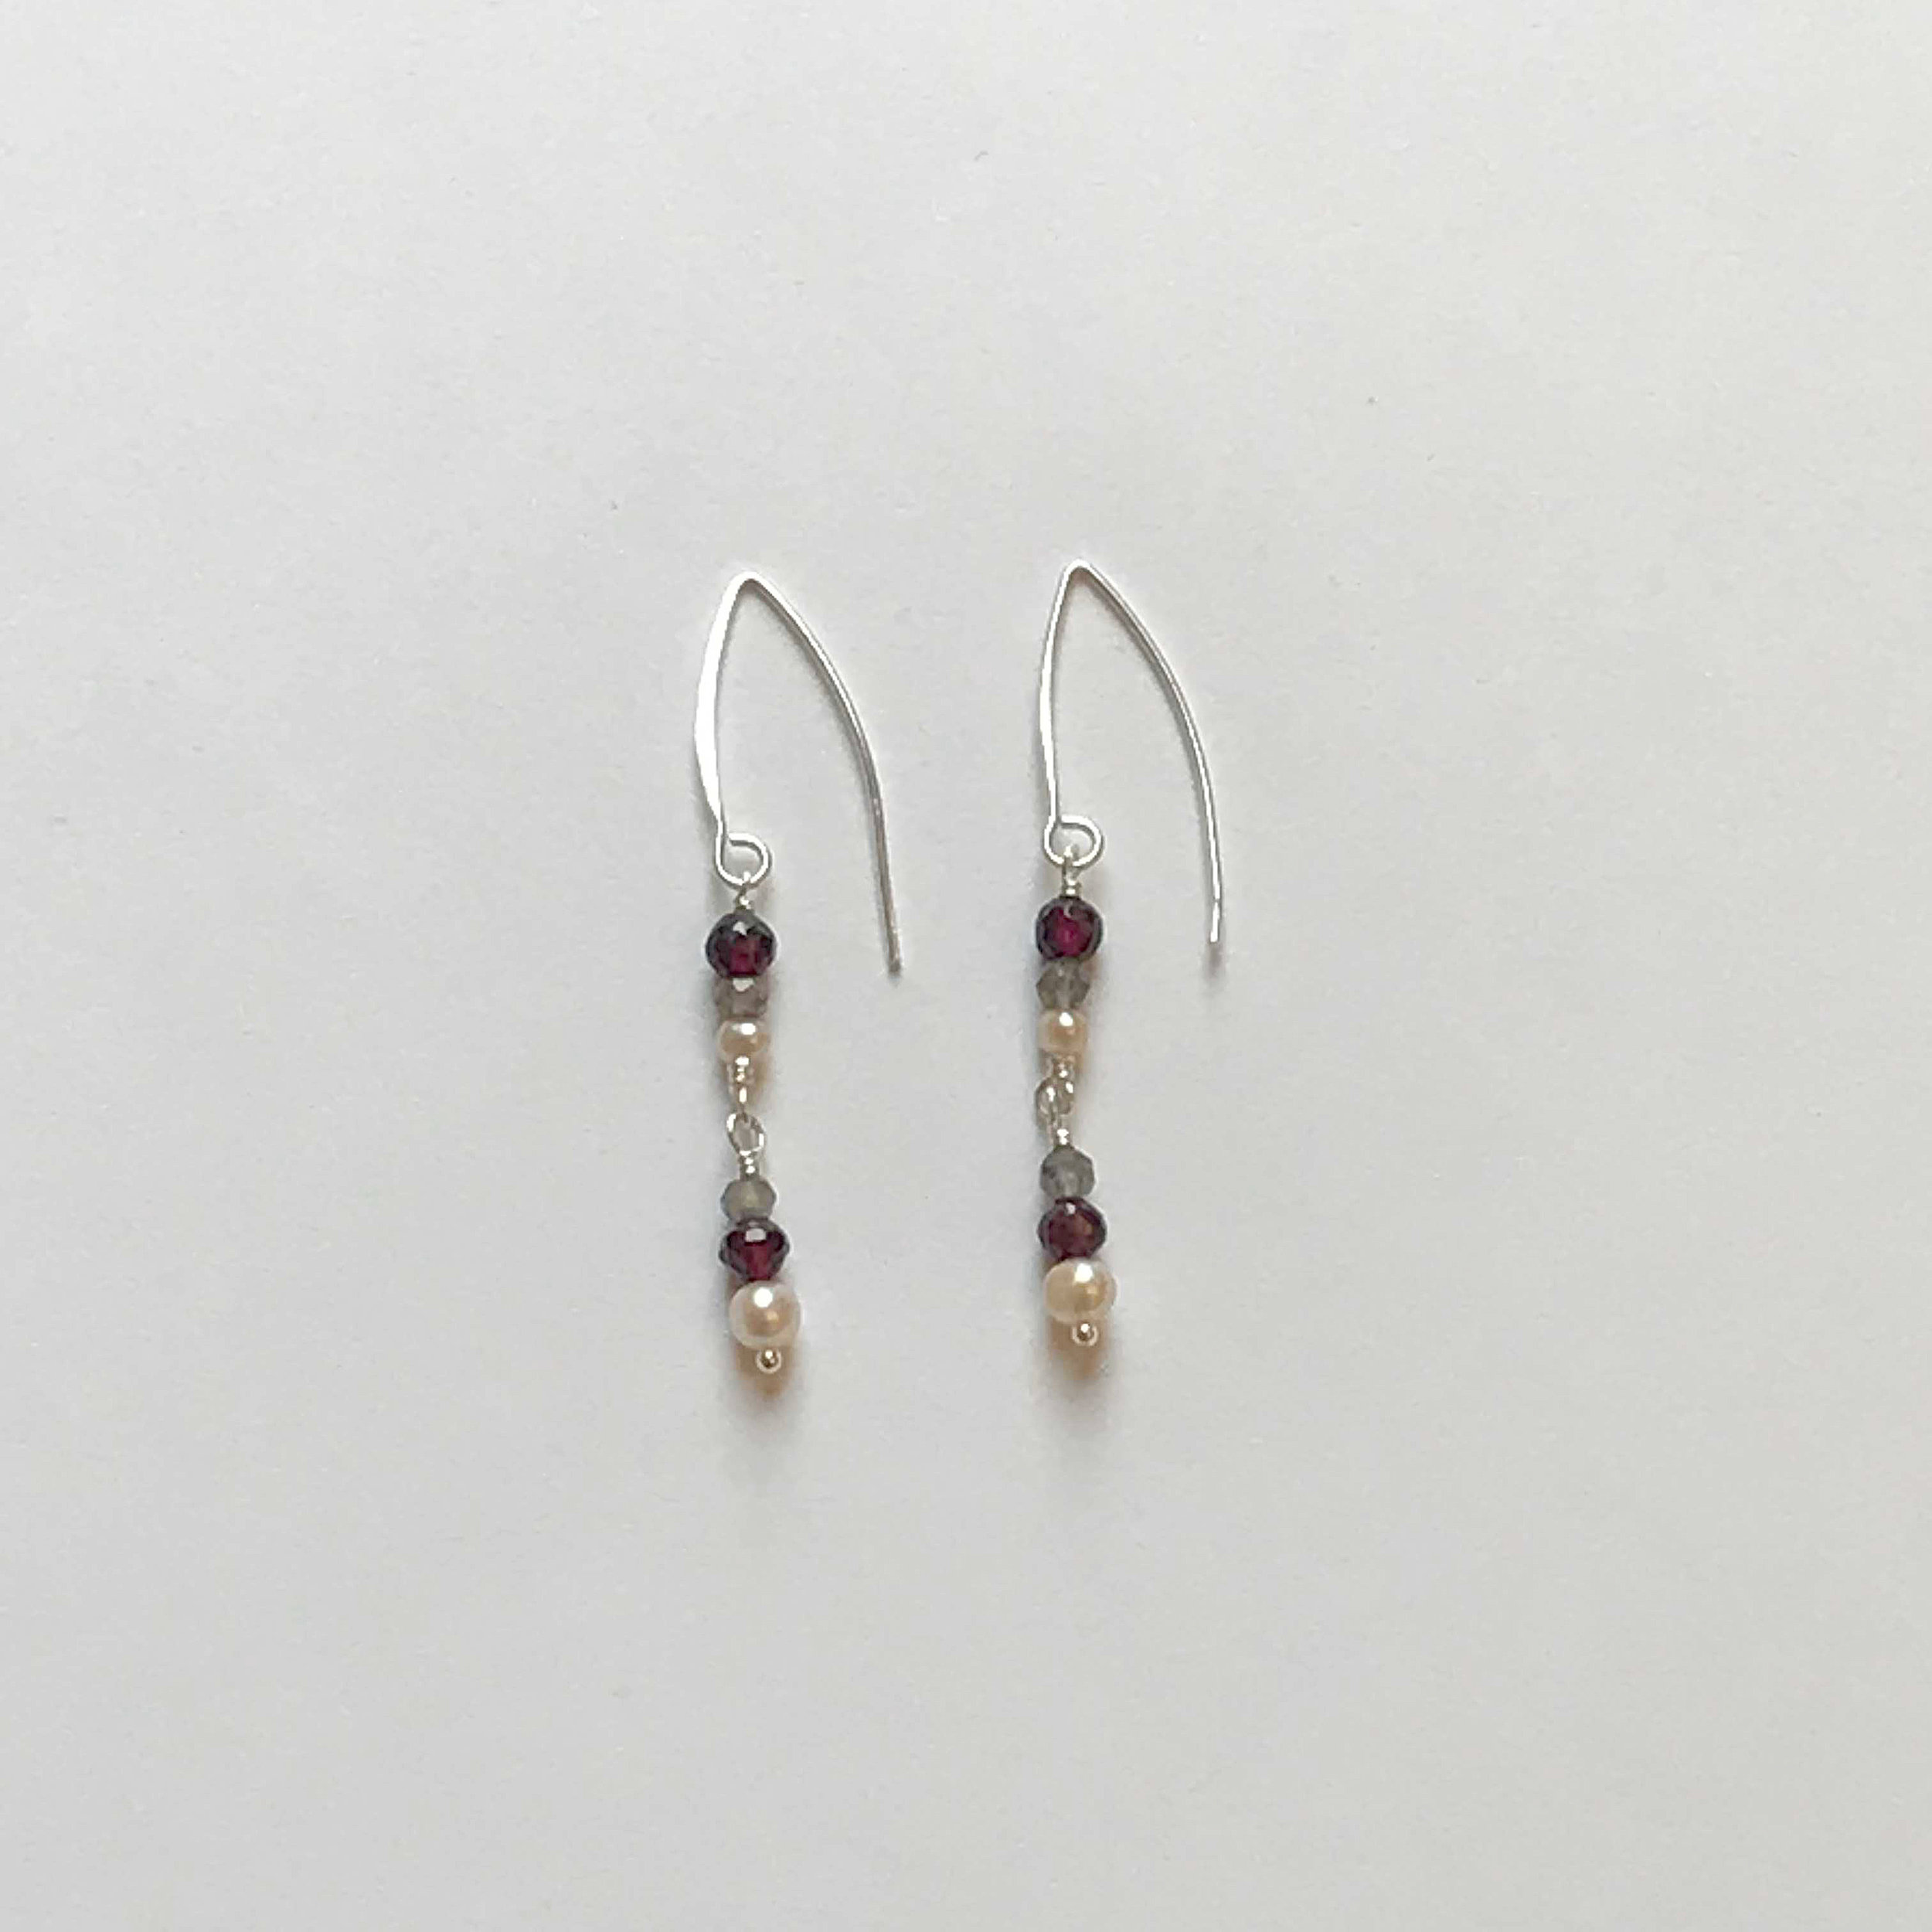 $90 Sterling Silver Garnet Fresh Water Pearl Labradorite Earrings